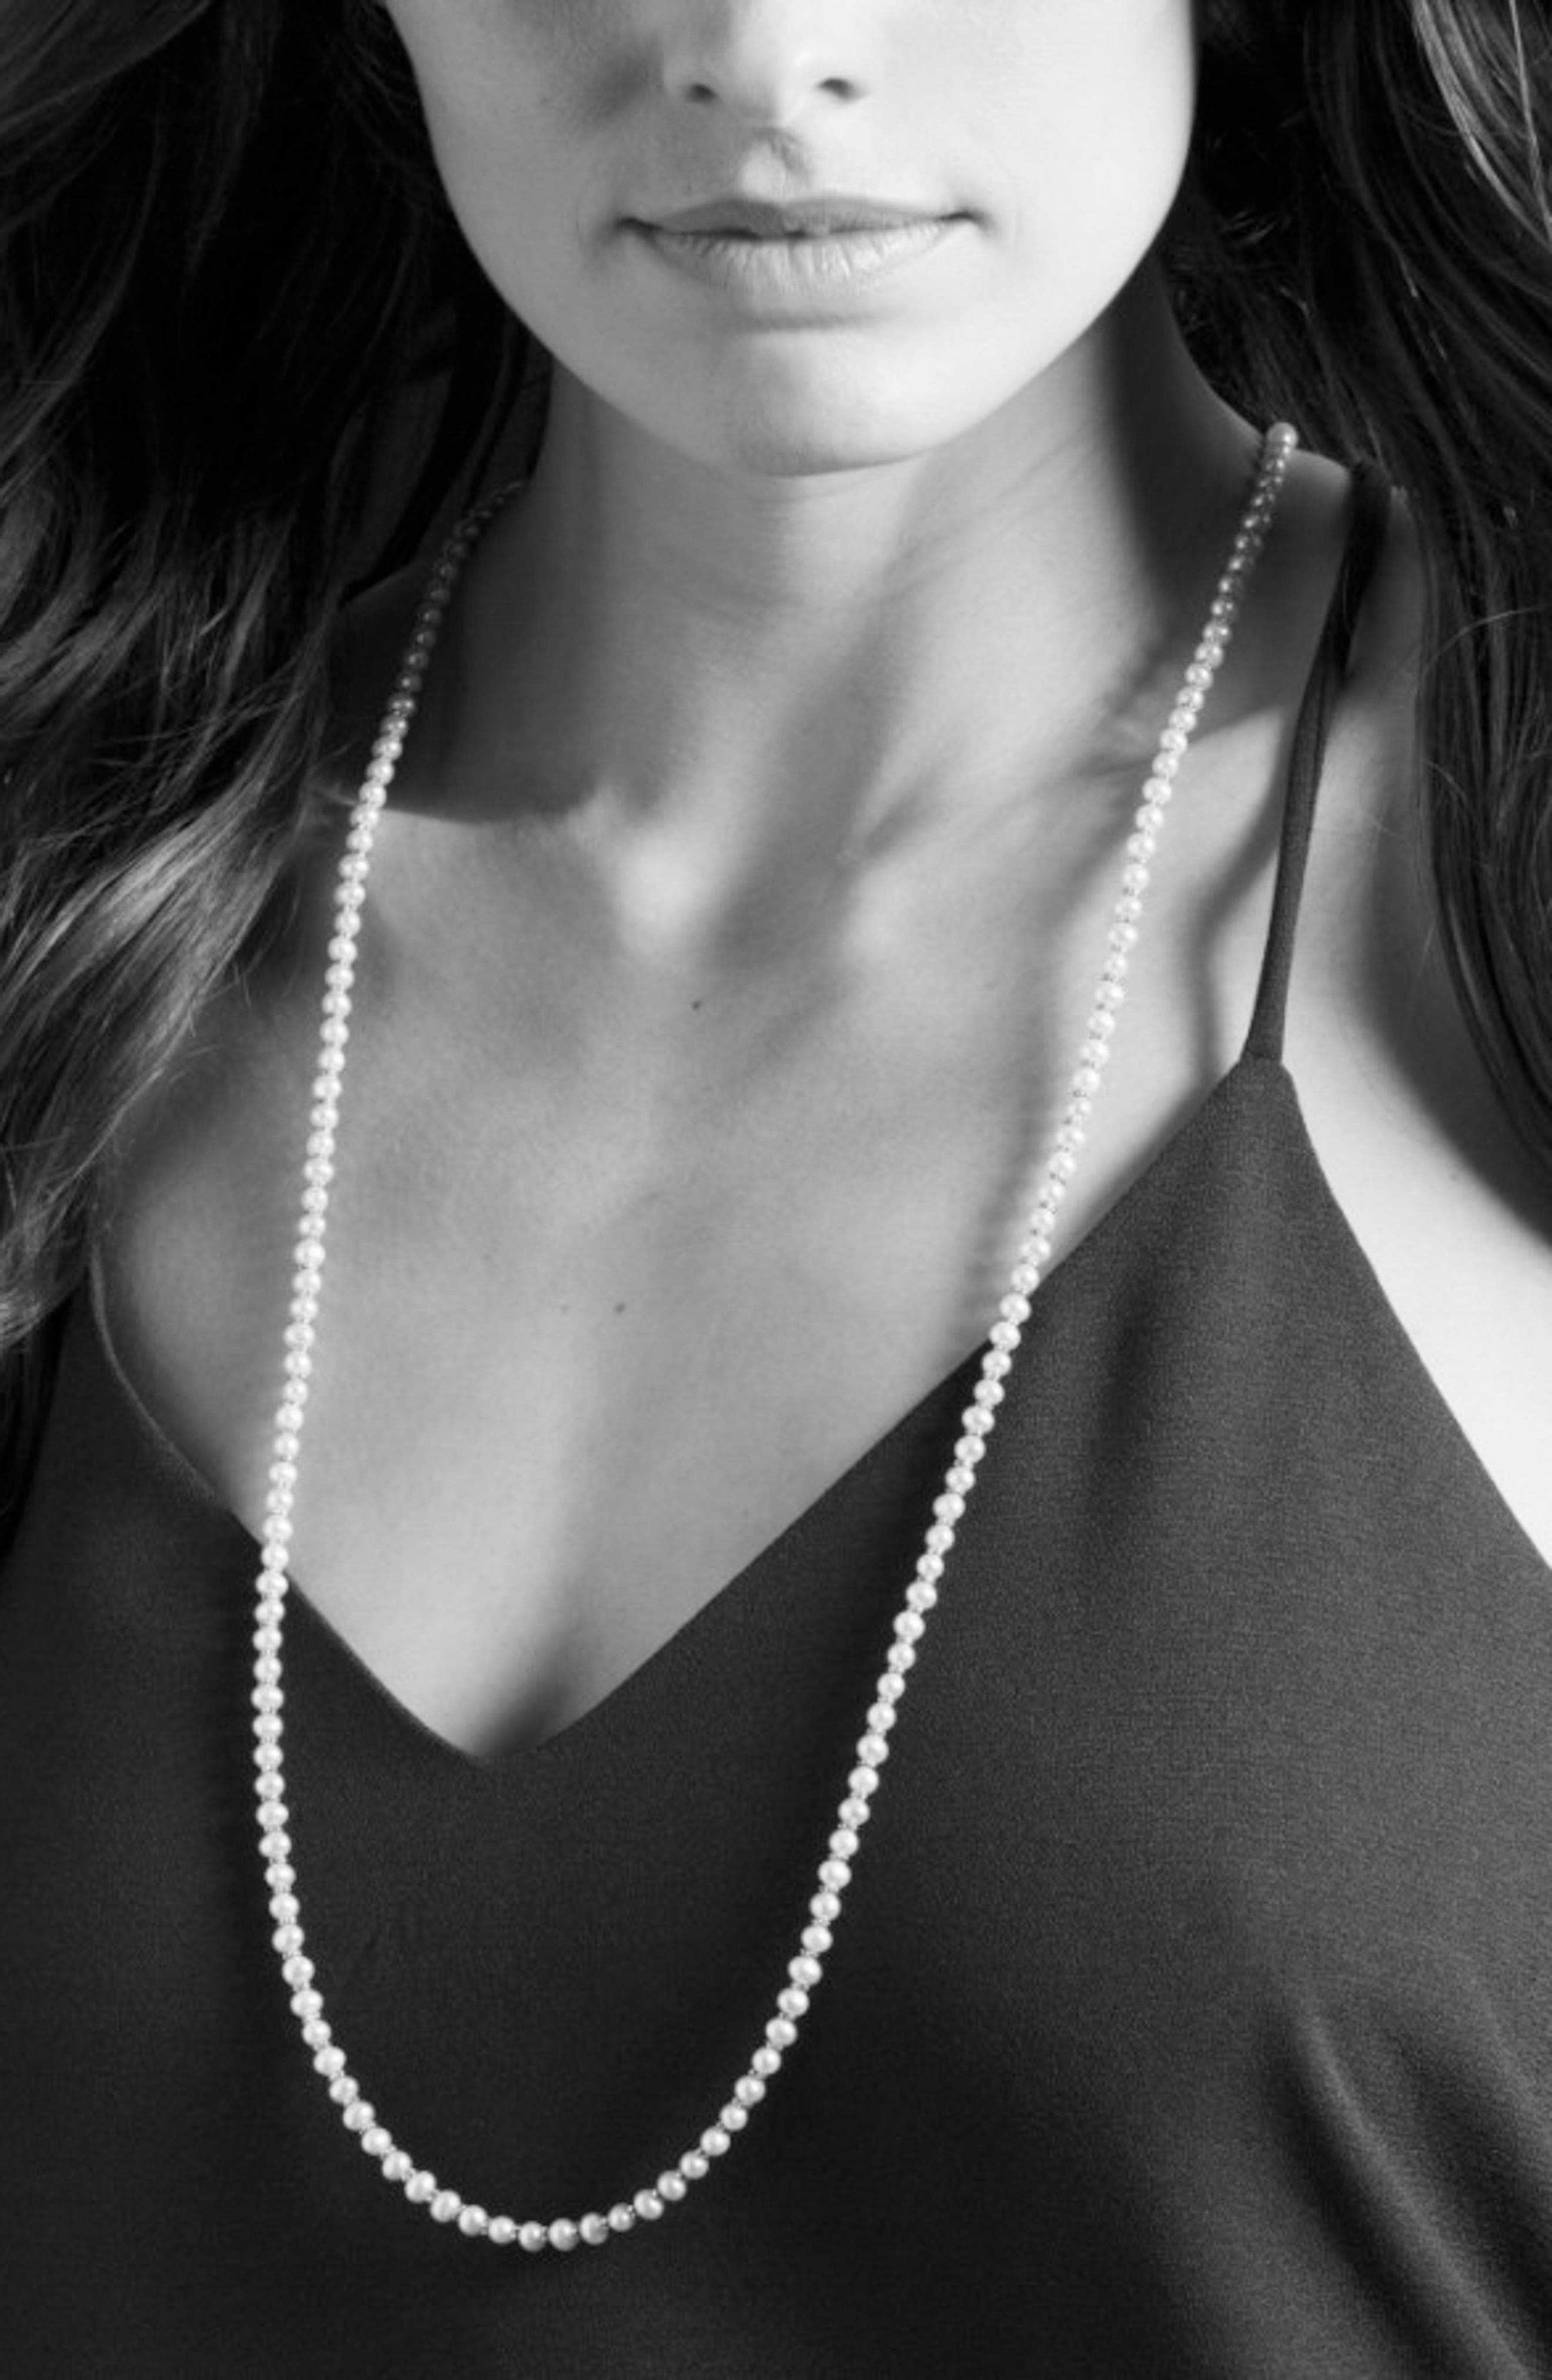 'Luna' Long Micro Bead & Pearl Necklace,                             Alternate thumbnail 3, color,                             Silver/ Pearl